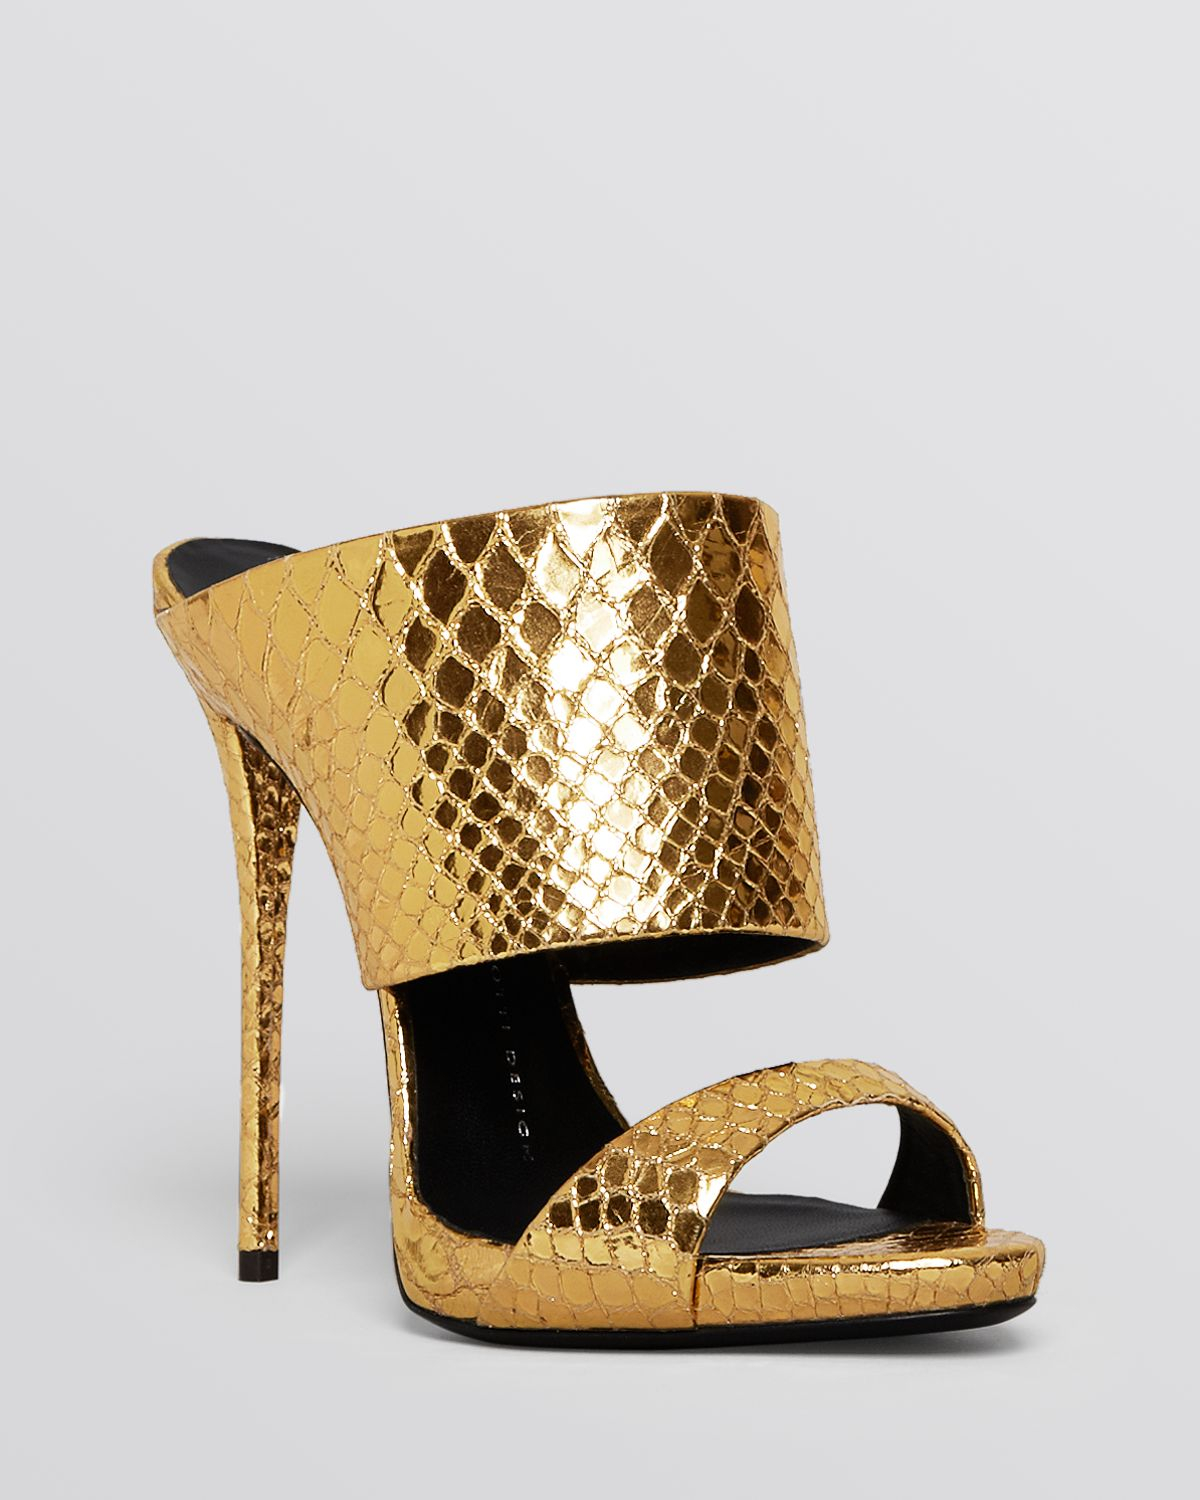 buy cheap prices Giuseppe Zanotti Snakeskin Slide Sandals discount huge surprise cheap sale store free shipping discounts n3TYoas